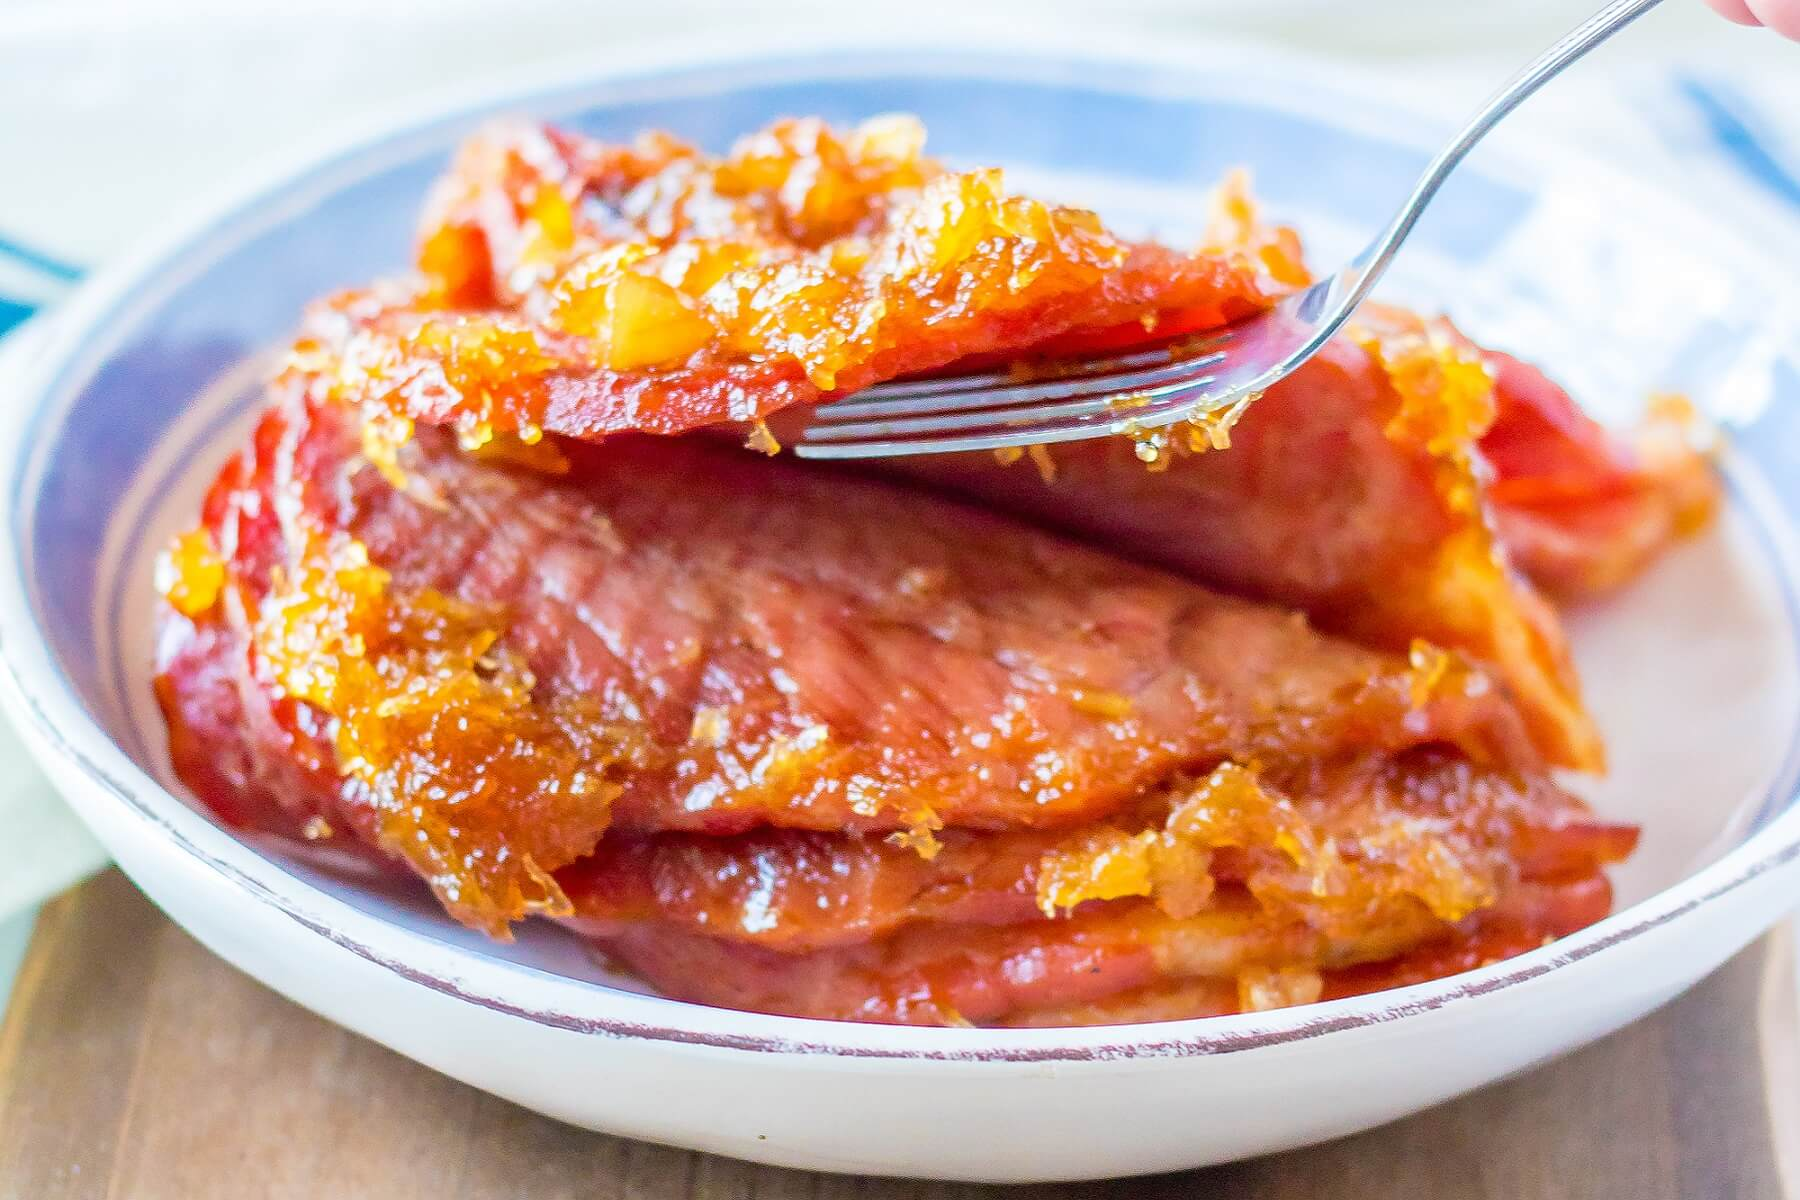 A fork takes a slice of ham coated in pineapple cola glaze.